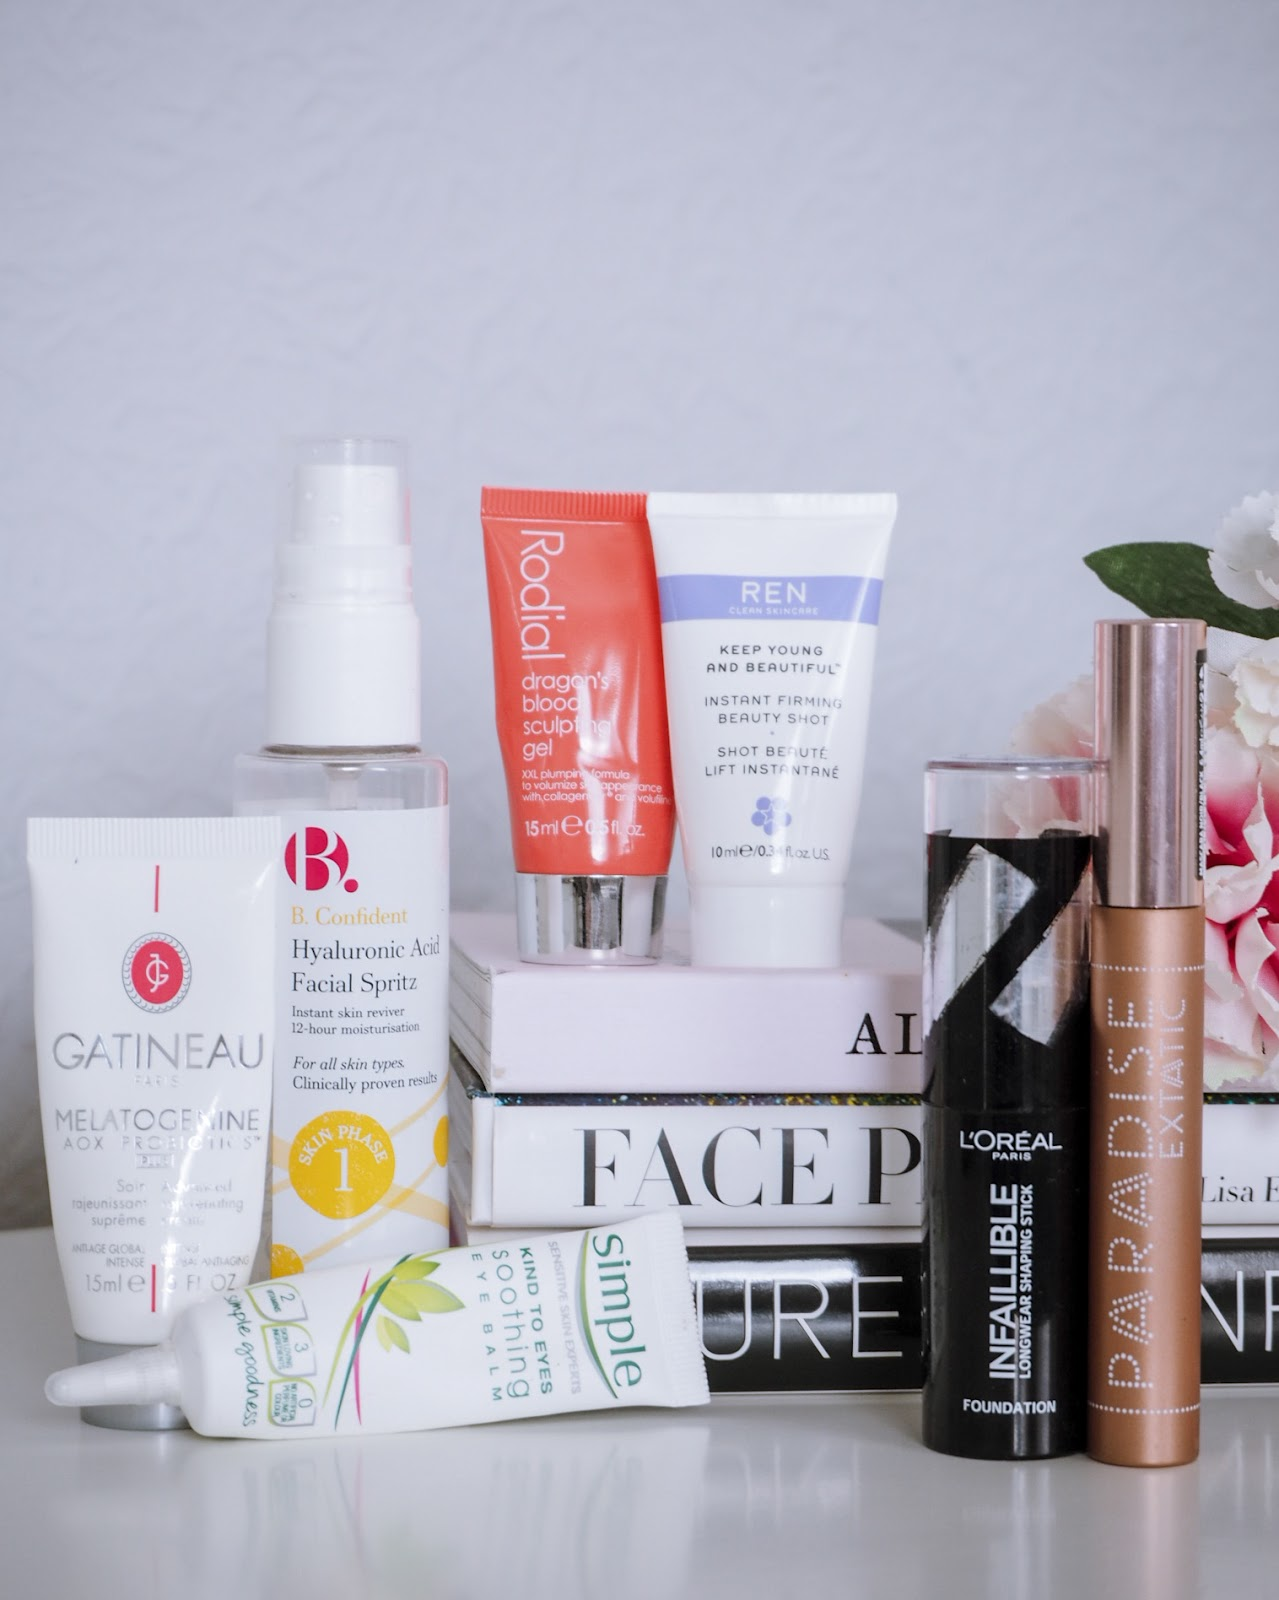 Selection of Empty Skincare and Makeup Products